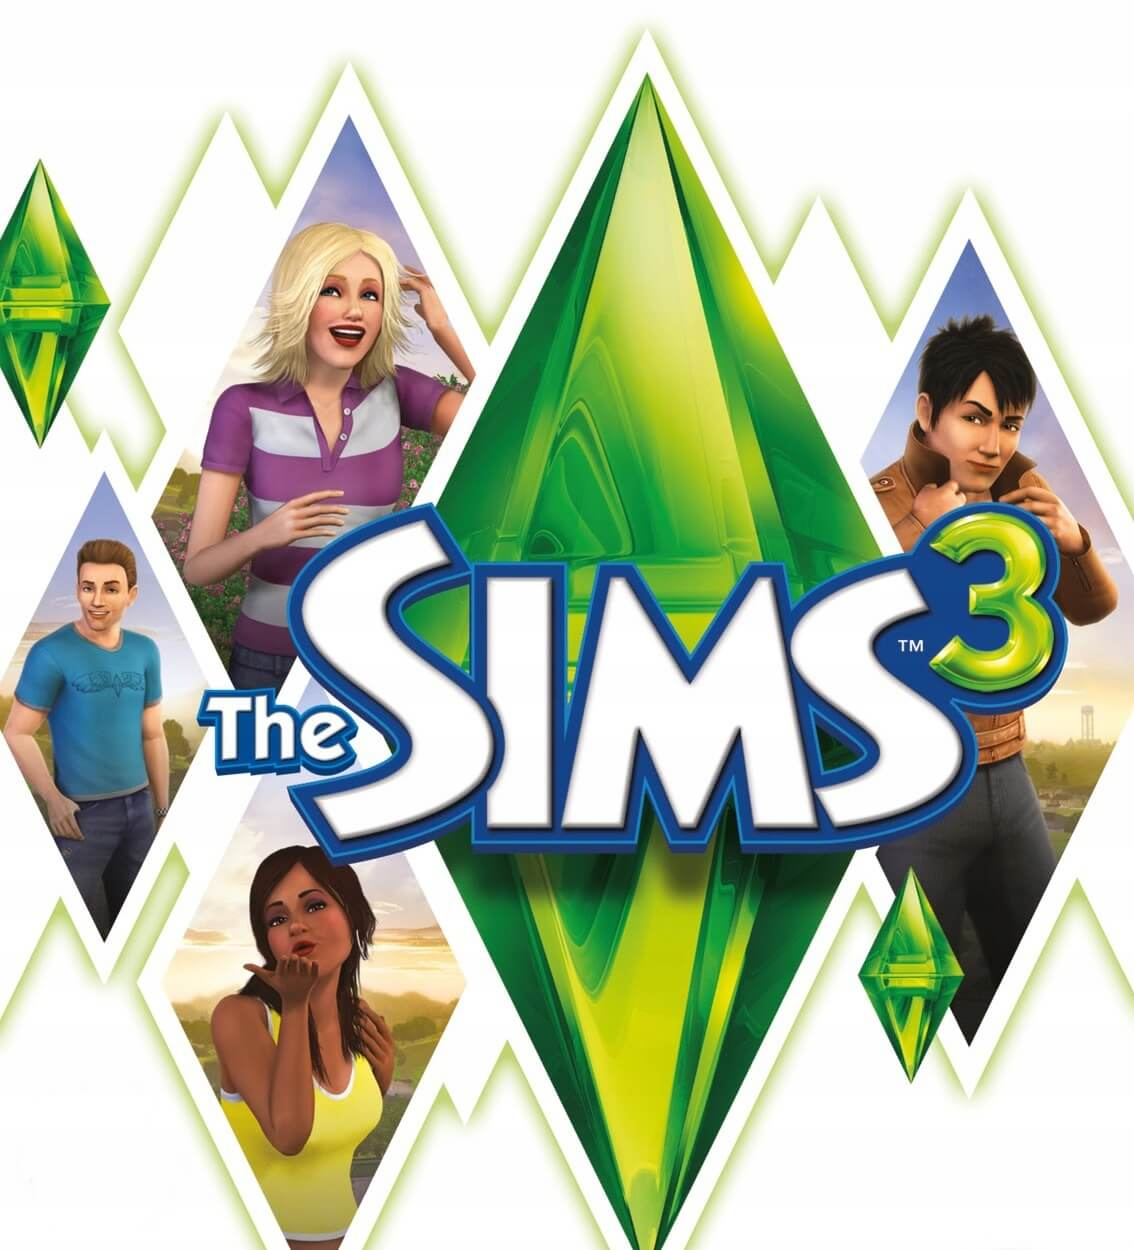 the sims 3 base game download